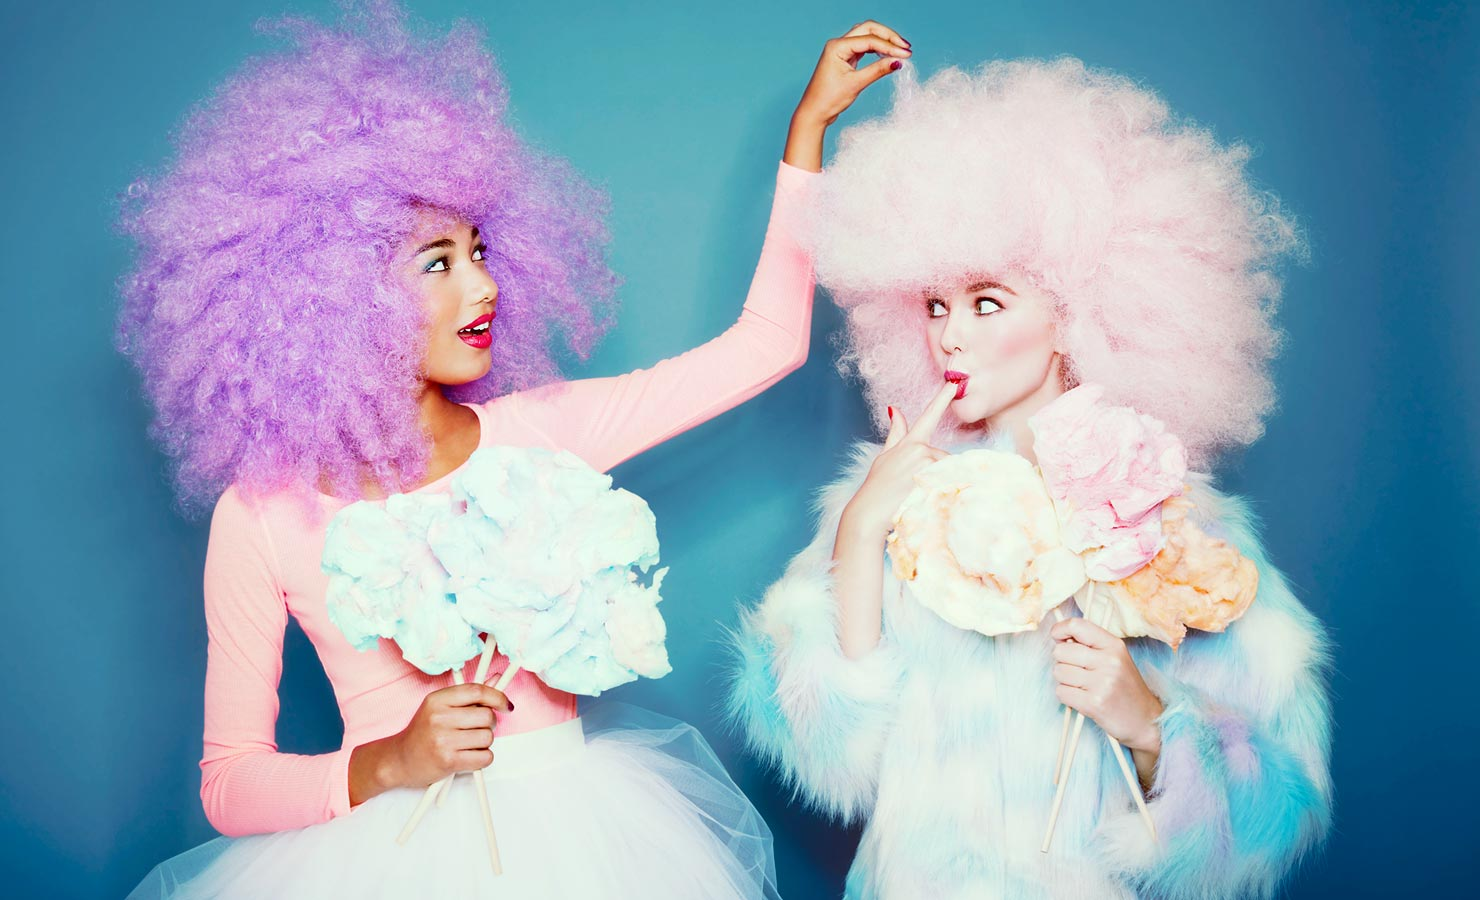 Mark DeLong - Commercial Photography - Two girls with poofy pink and purple hair.